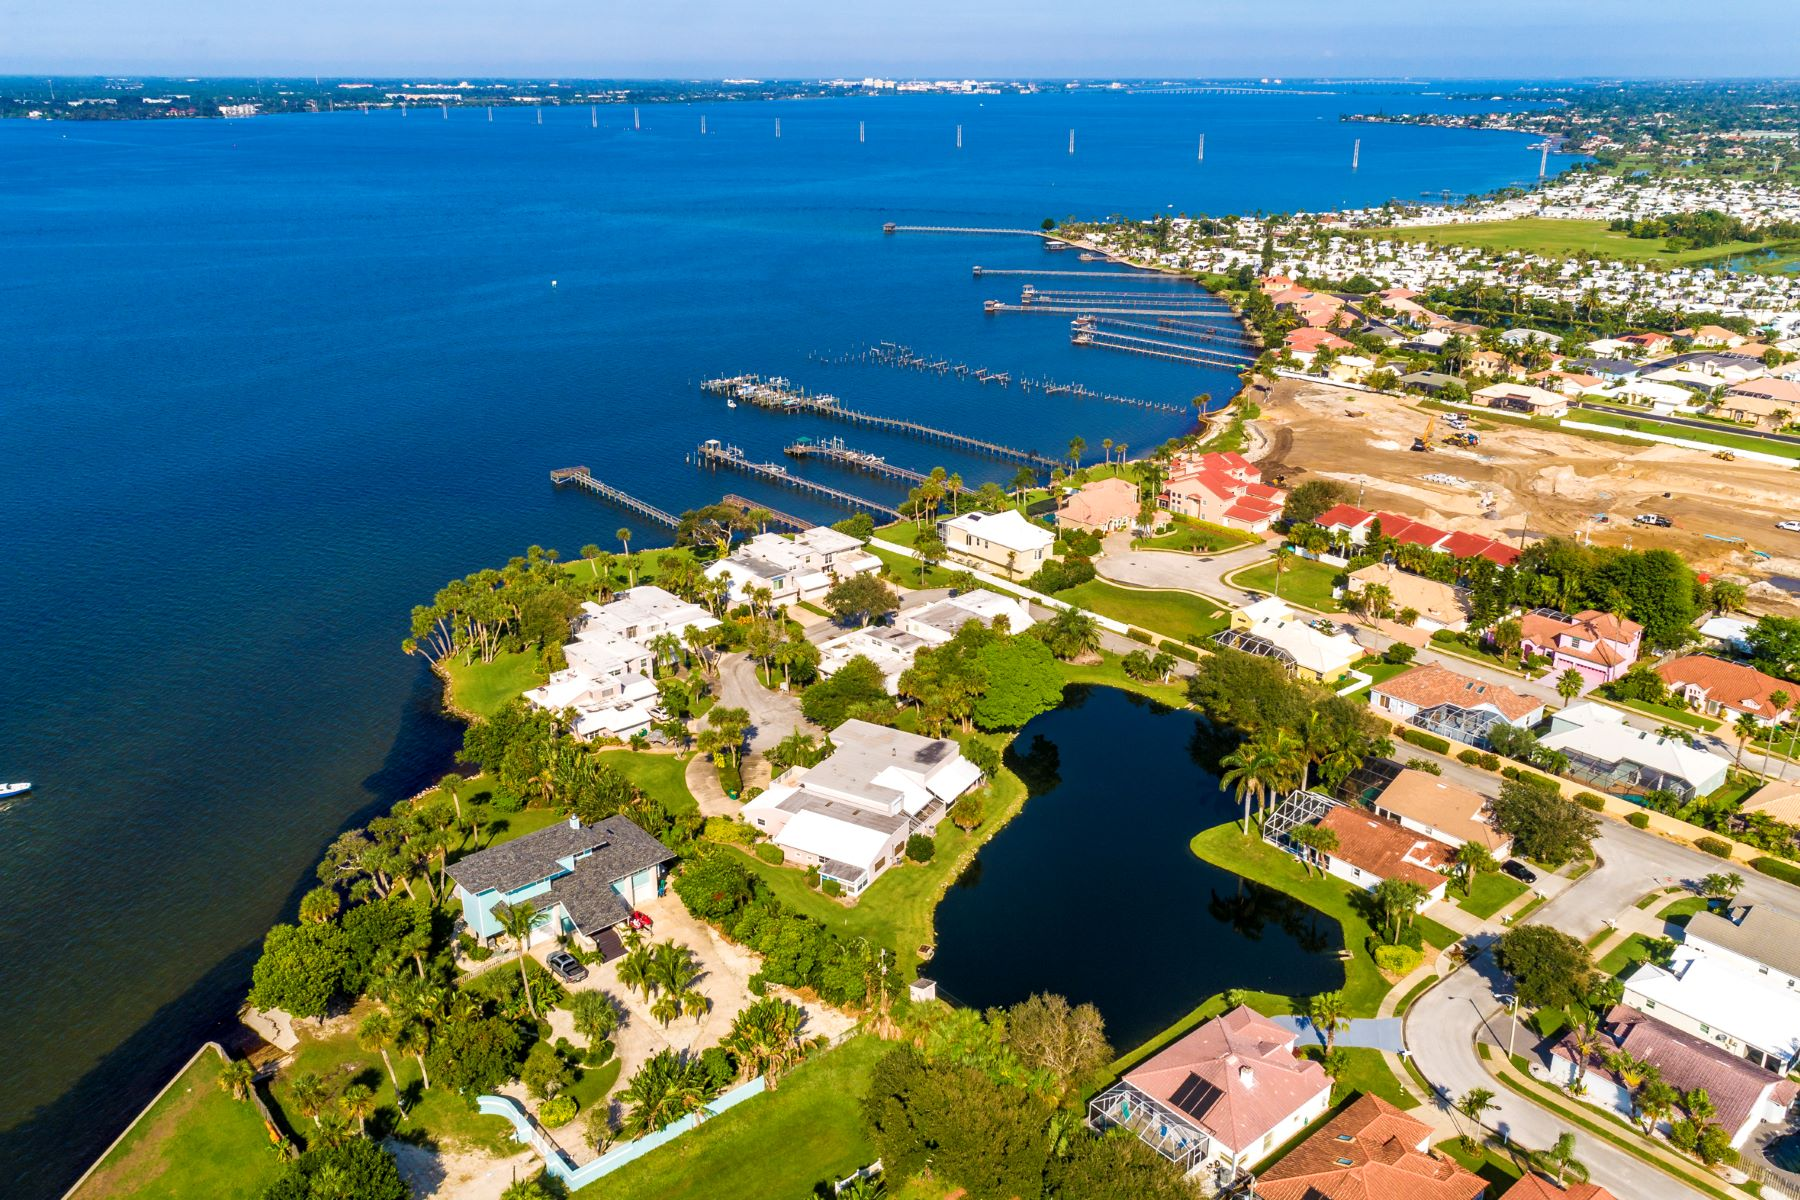 Additional photo for property listing at Spacious Town home in Majorca 404 La Costa Street Melbourne Beach, Florida 32951 United States